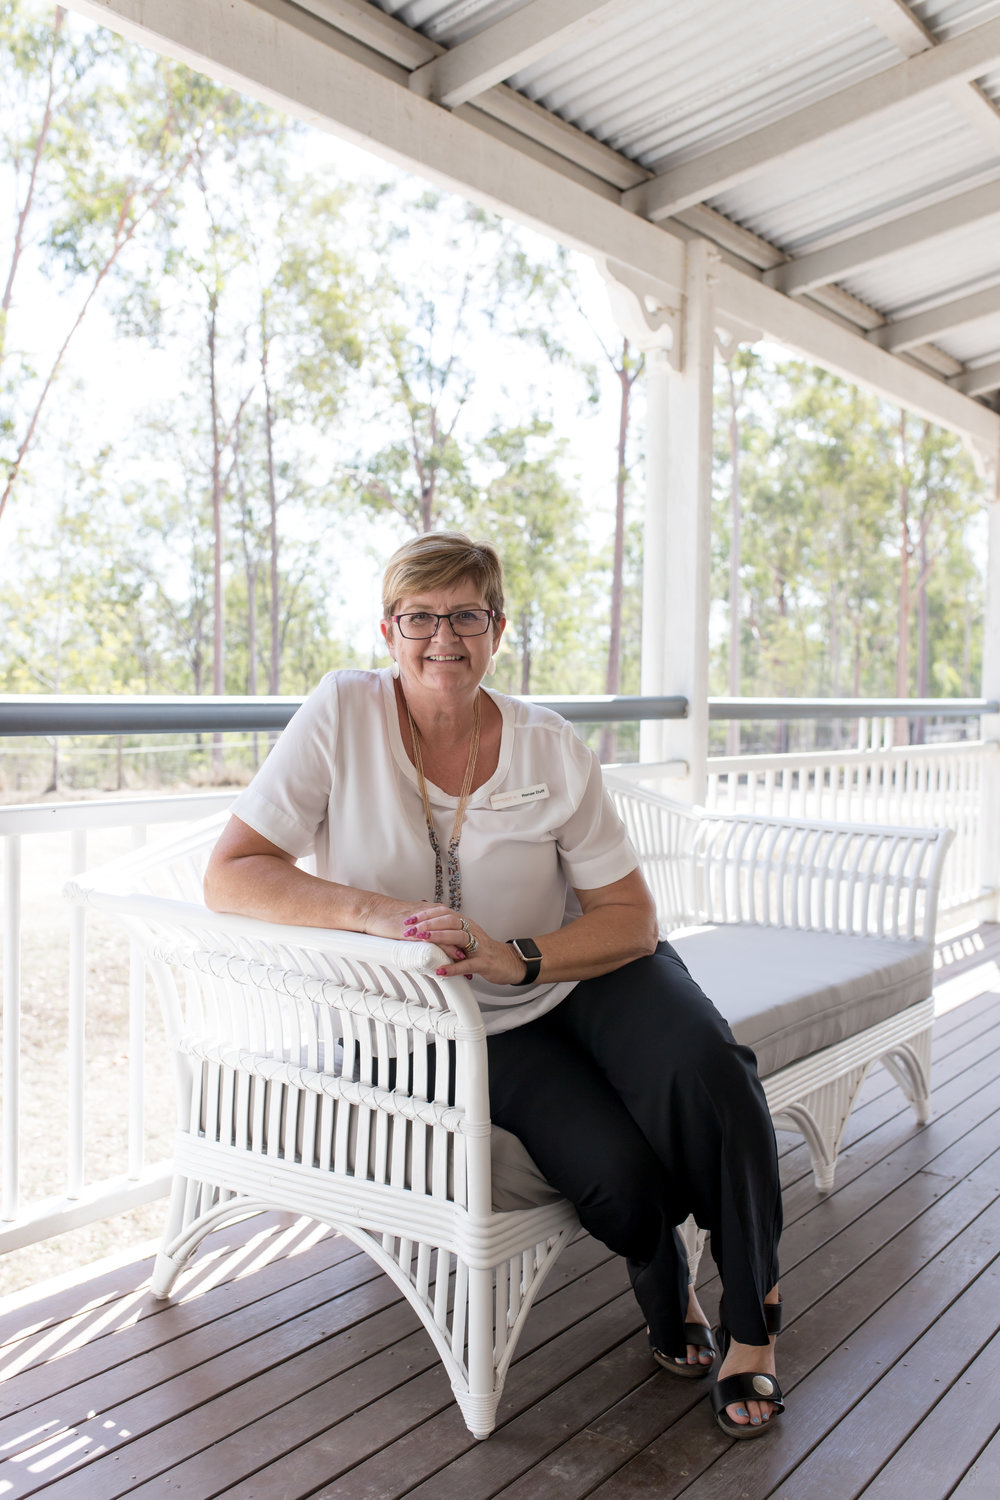 Renae Duff - SALES CONSULTANTE: Renae@MeaganReadProperty.com.auM: 0418 750 528Renae is an award-winning agent and has just won the A List award 2017 (top 150 agents in Queensland) and was the No. 1. Salesperson for Gross Commission Sales Nationally for 2016 for the Elders Group.Renae is a very competent and successful agent having worked in this area for nearly 12 years. Dedicated and motivated she enjoys looking after her many clients – nothing is too much trouble.